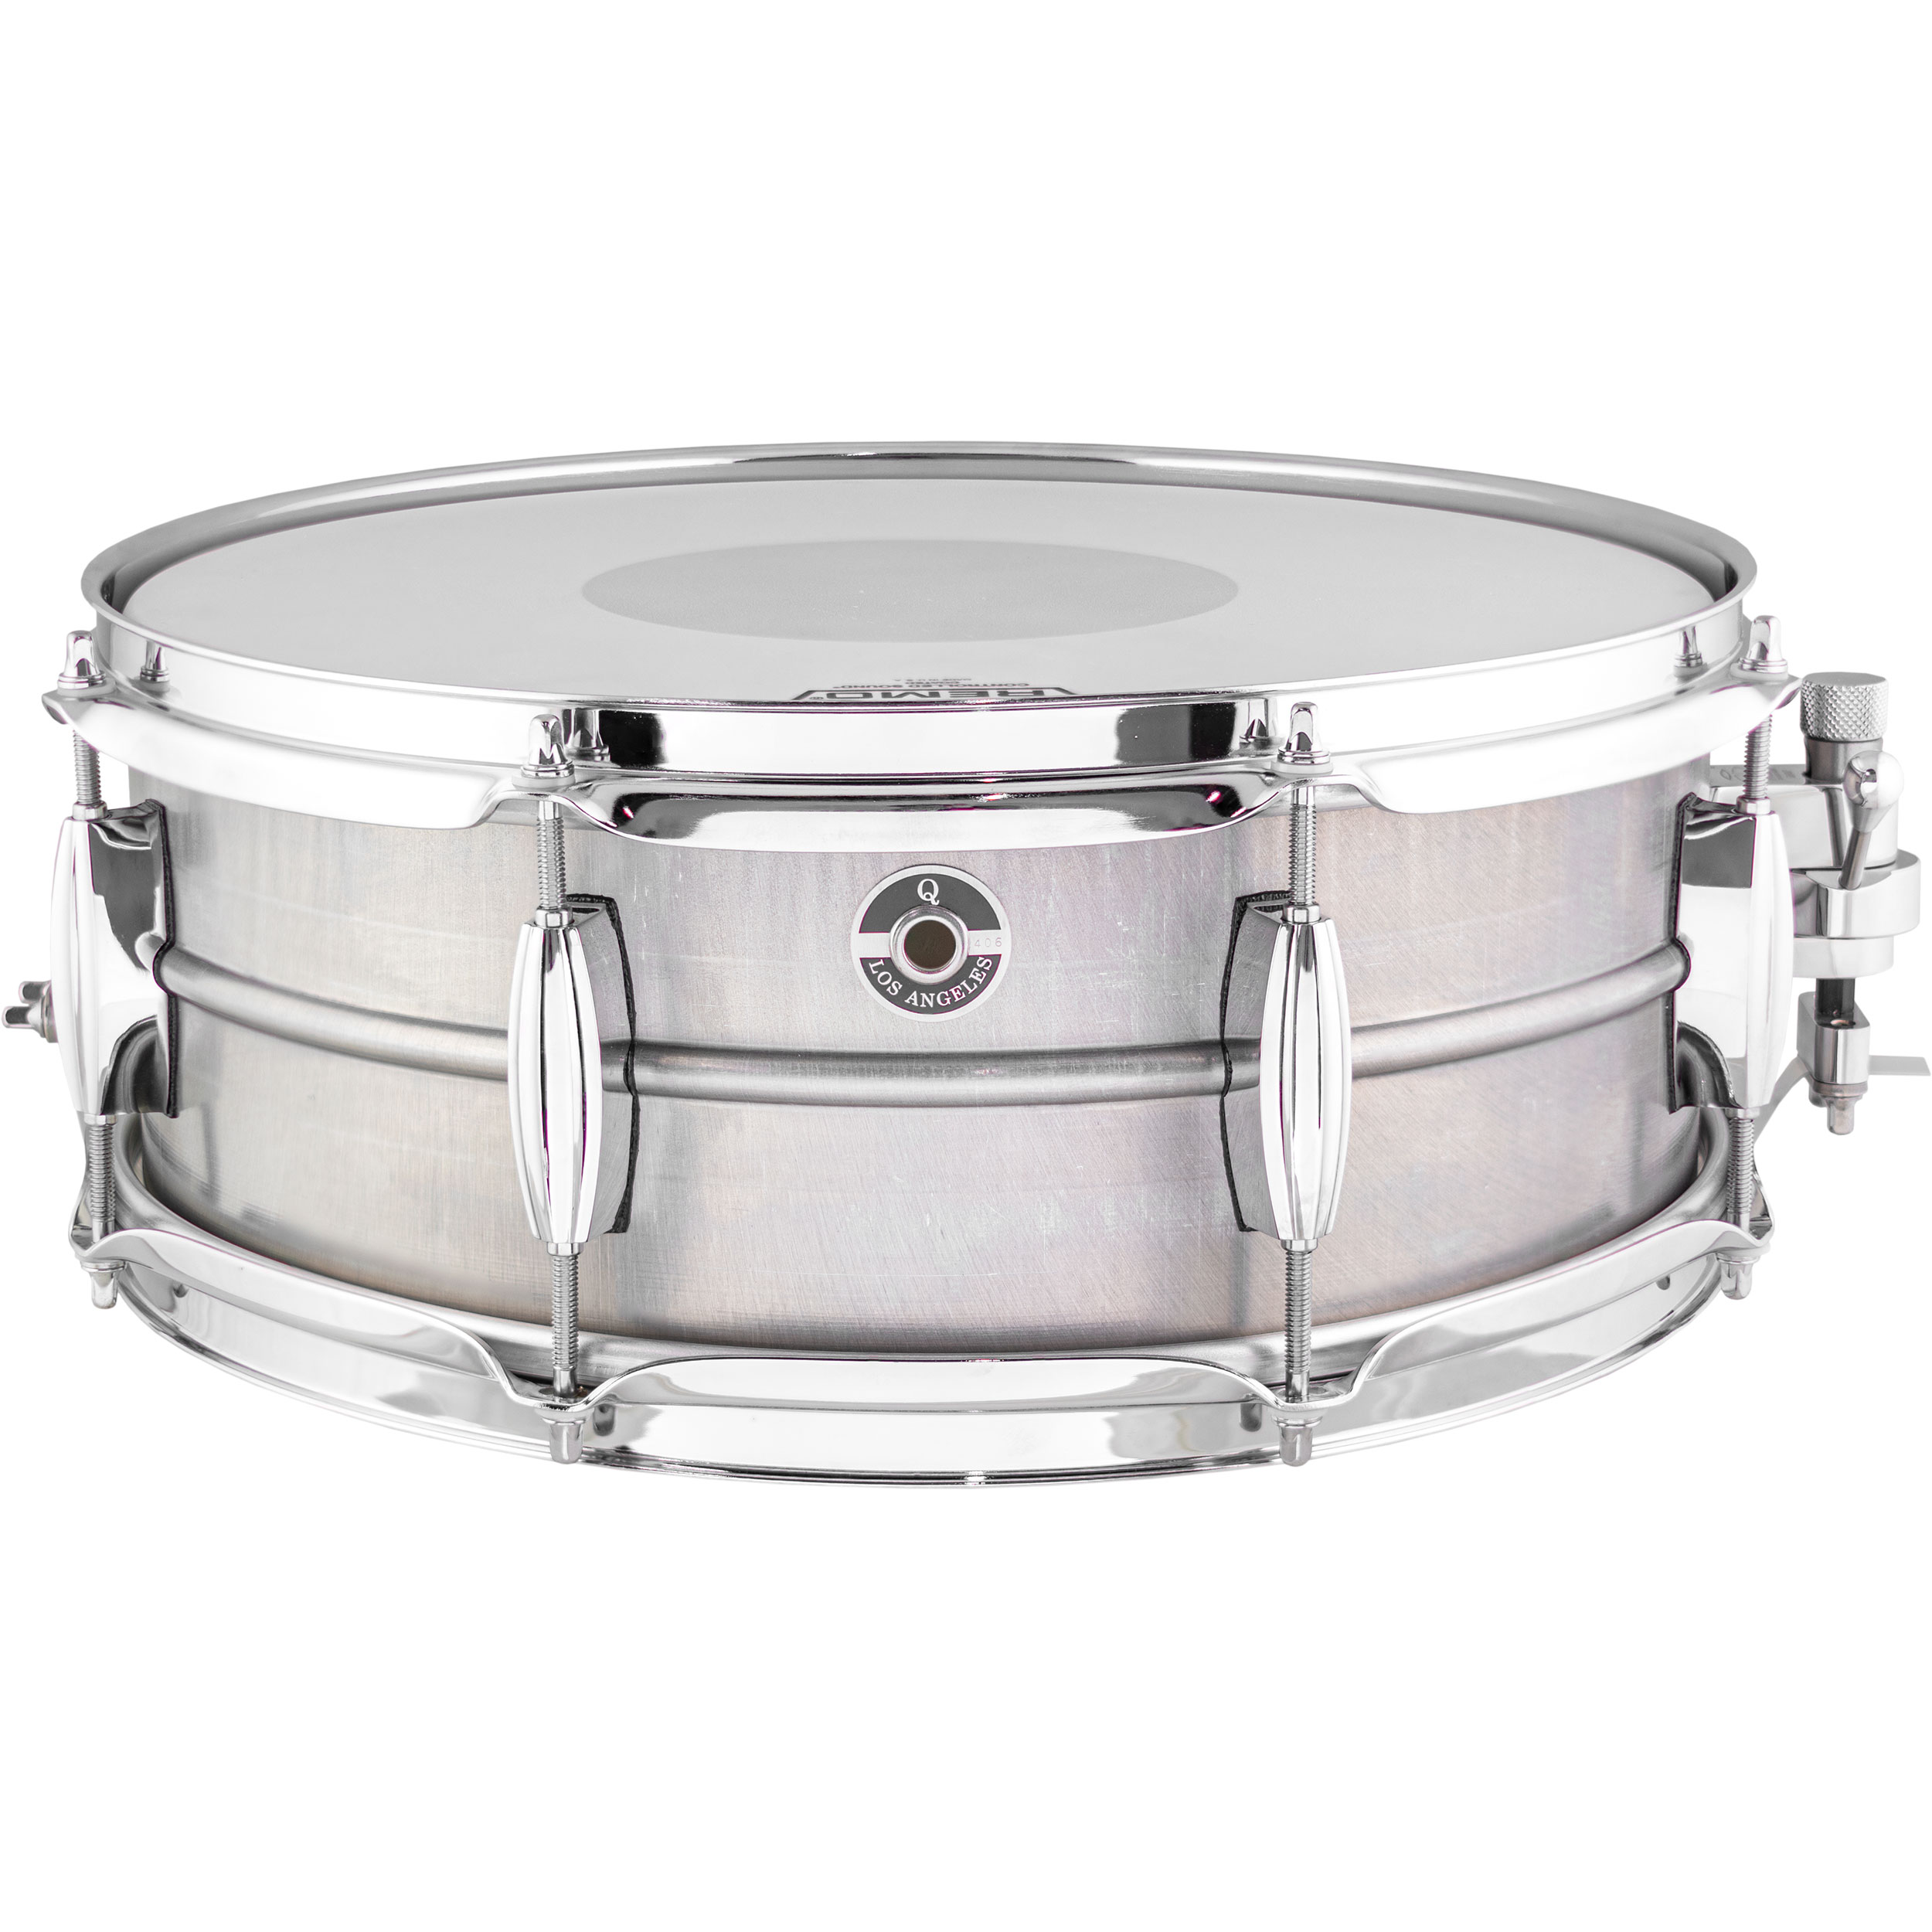 "Q Drum Co. 5.5"" x 14"" Gentlemen"